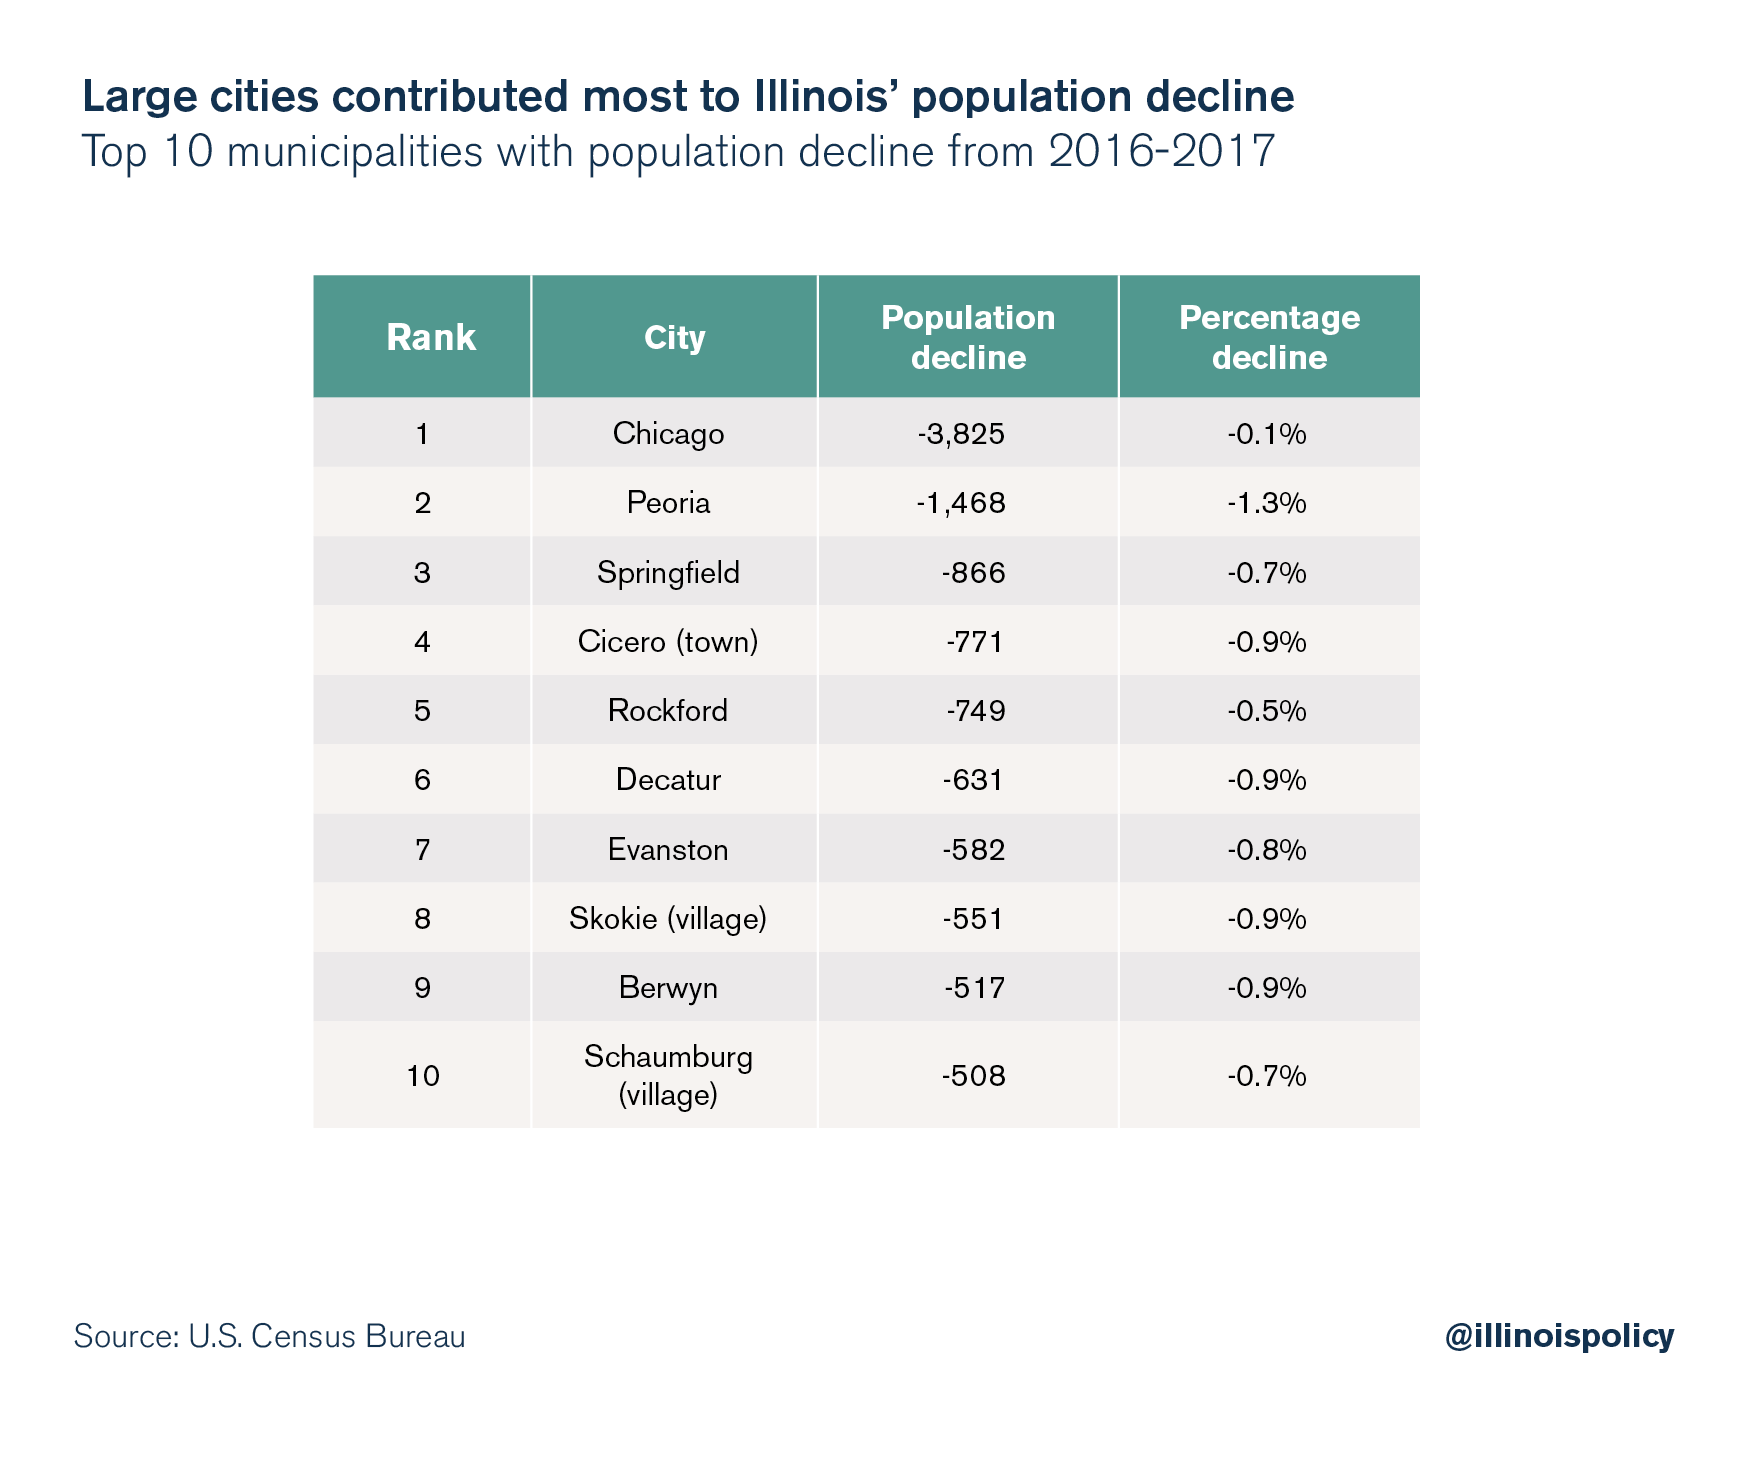 Large cities contributed most to Illinois' population decline